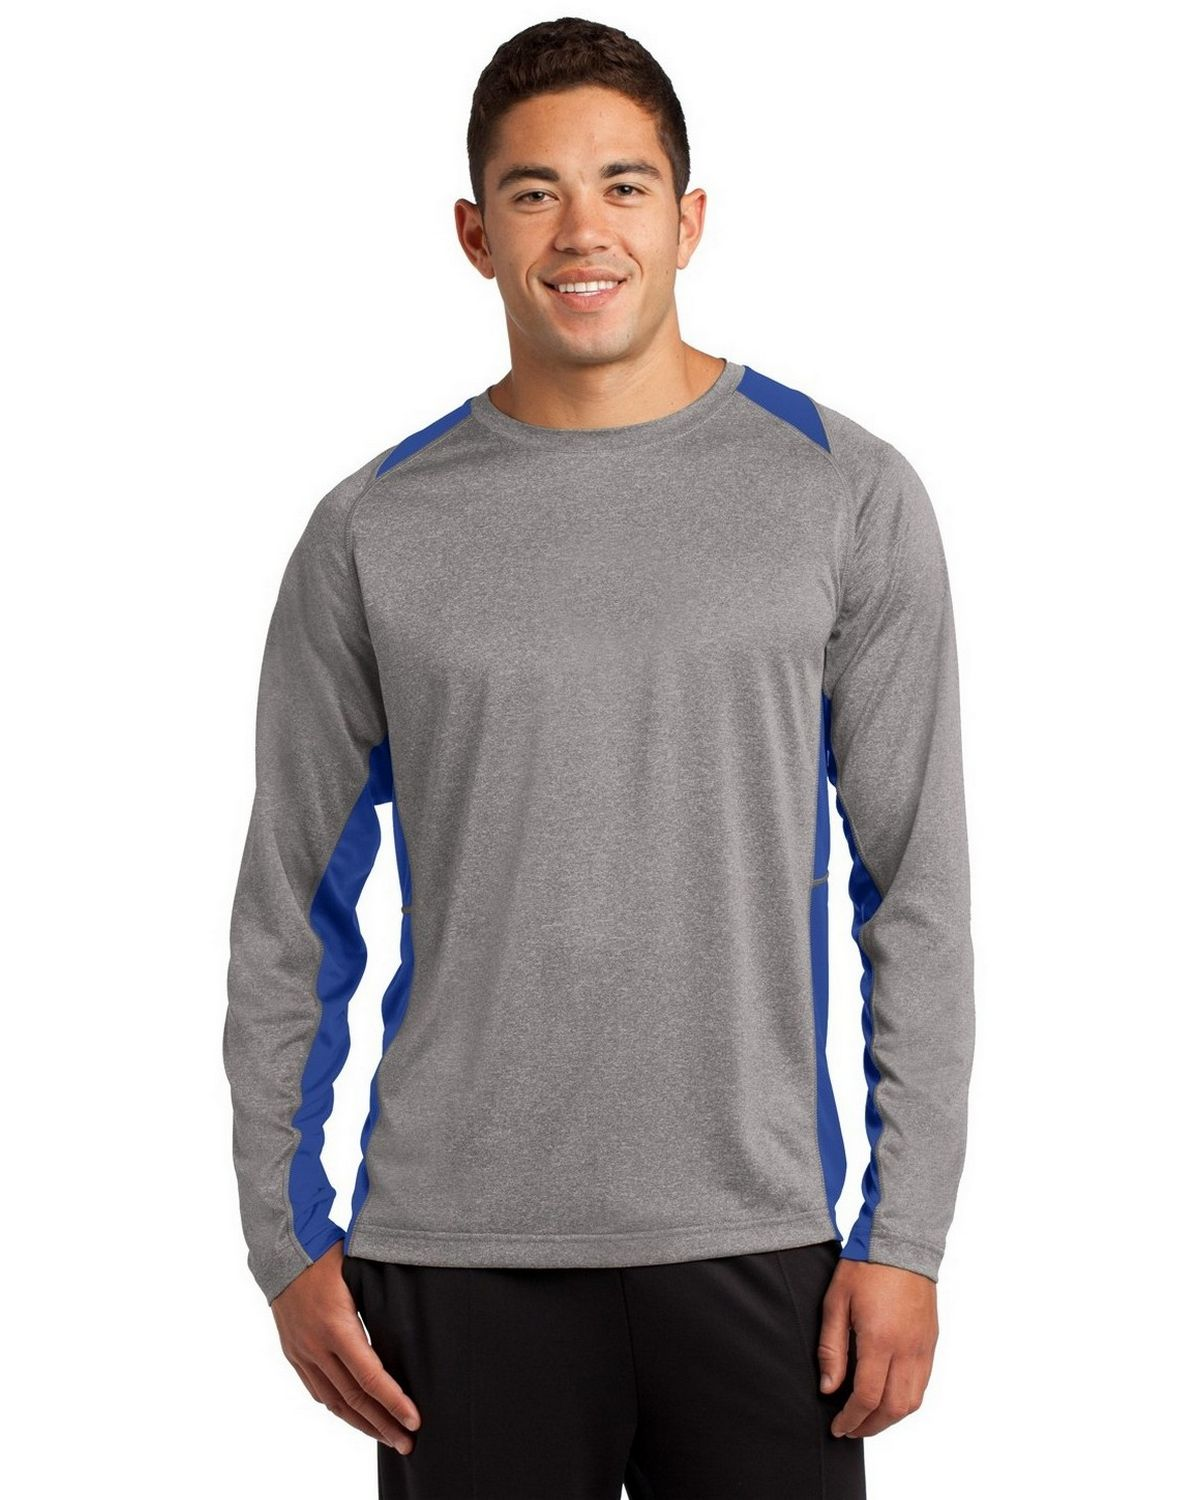 Sport-Tek ST361LS Heather Colorblock Contender Tee - Vintage Heather/True Royal - XS ST361LS